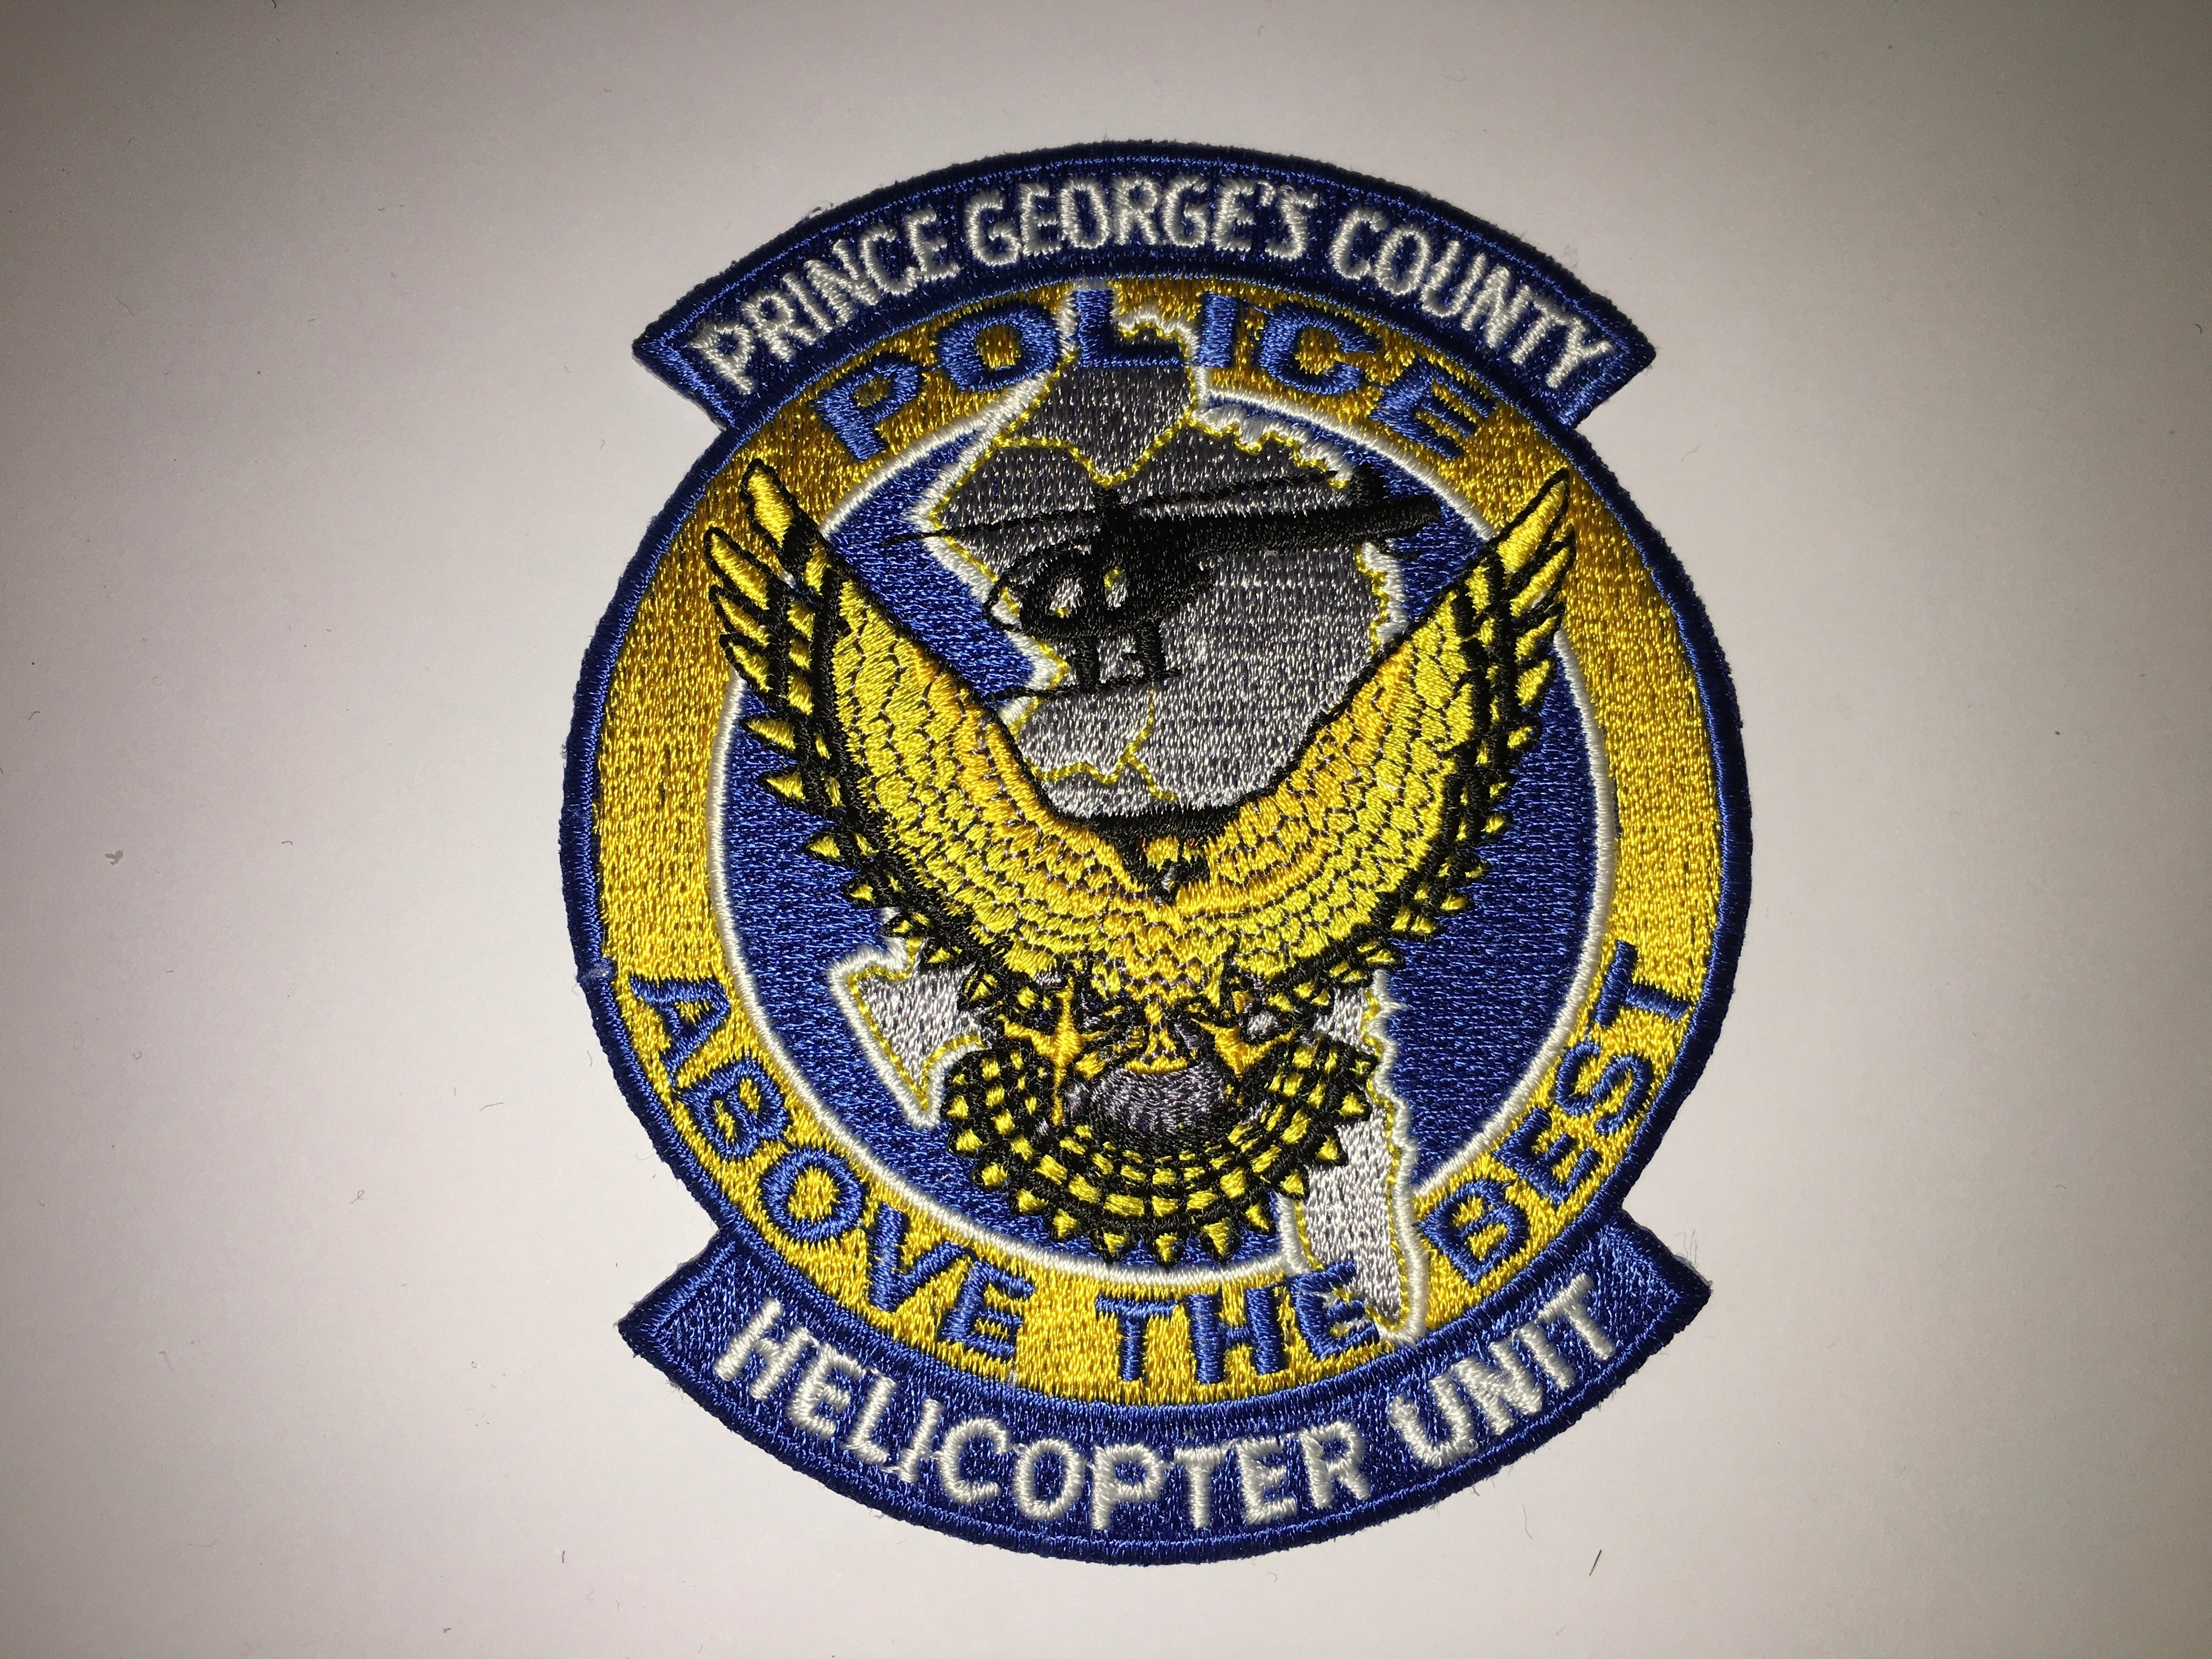 USA - Maryland - Prince George's County Helicopter Unit